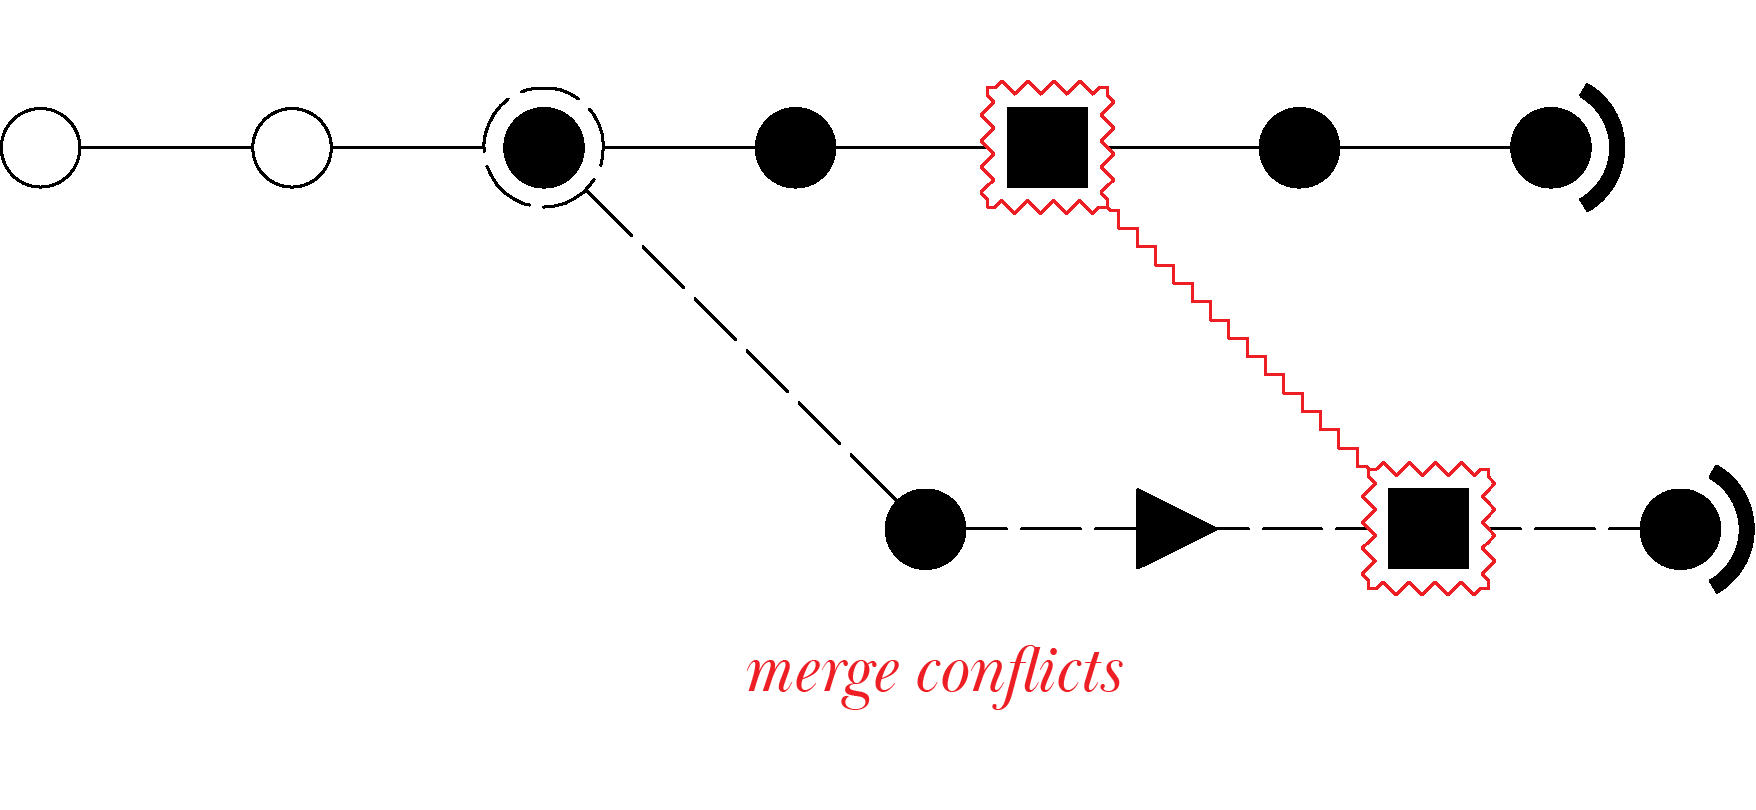 Diagram showing merge conflicts